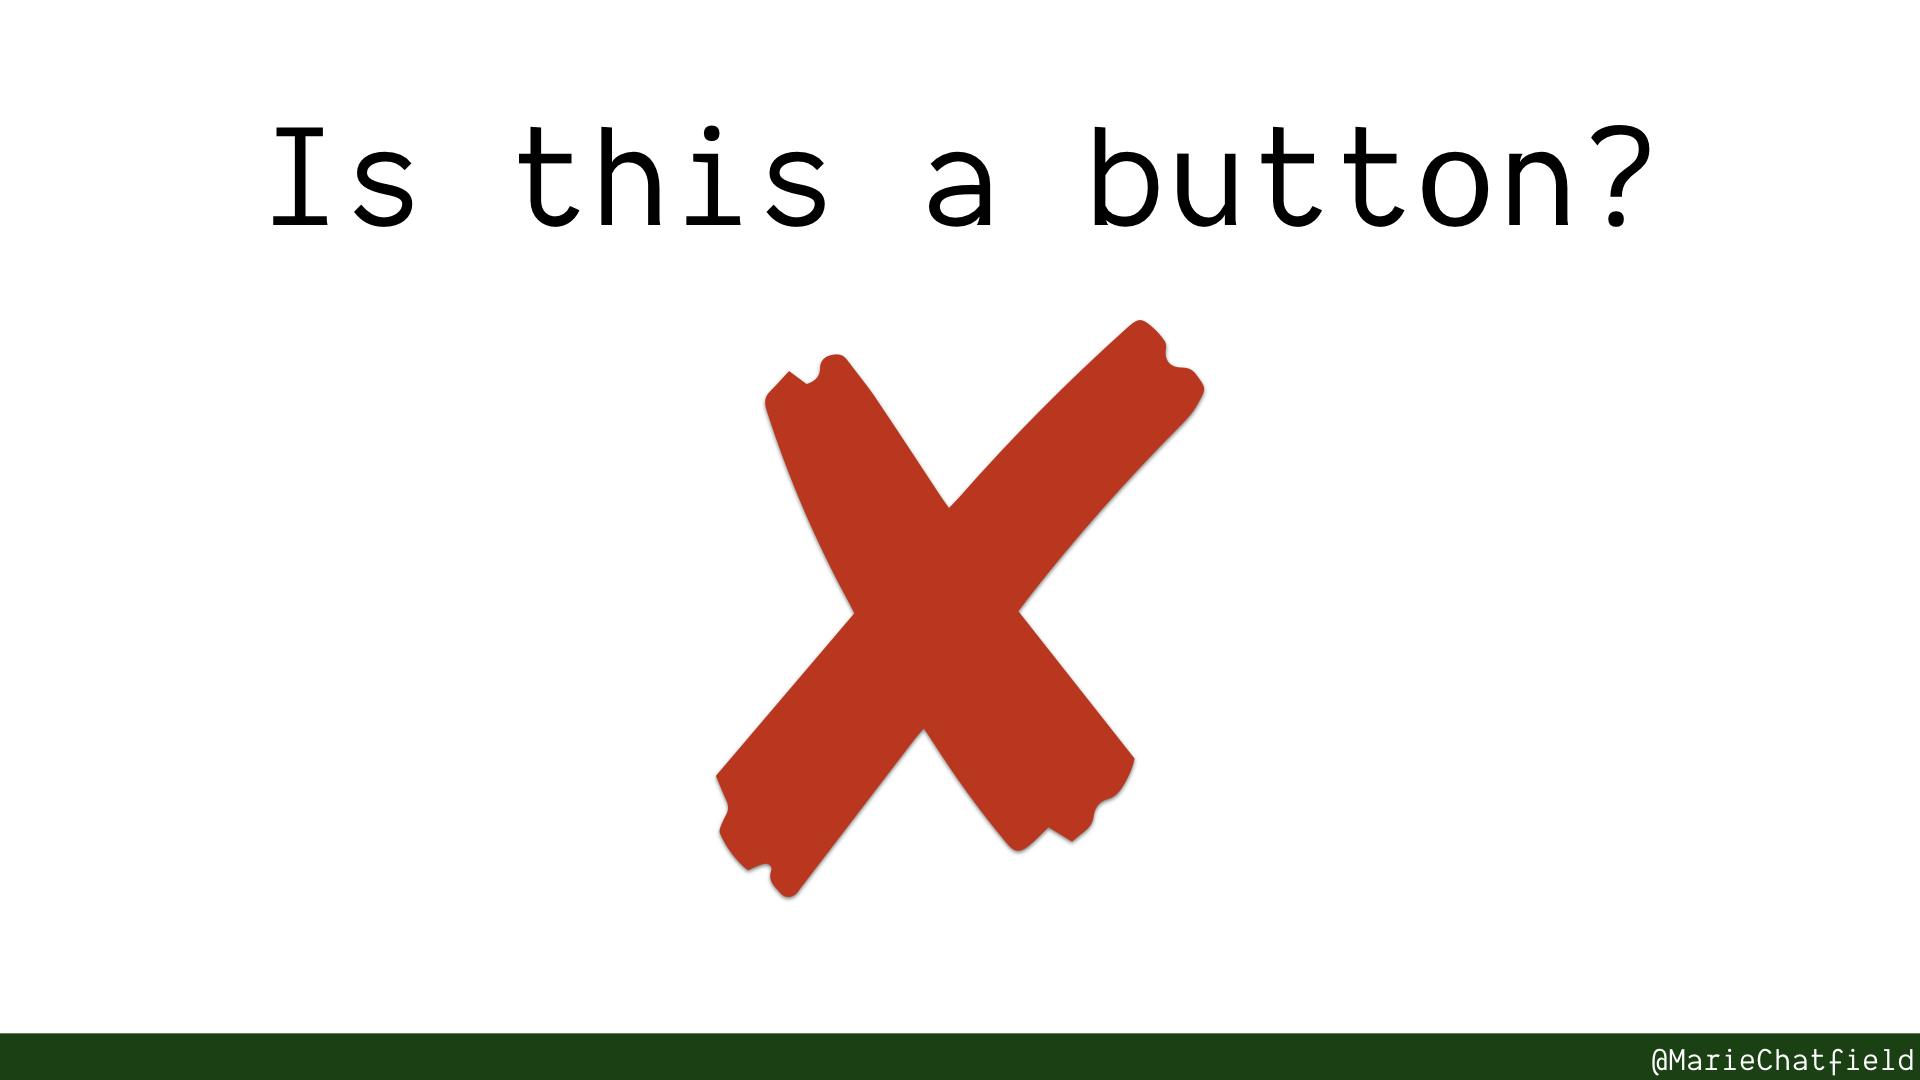 Is it a button? Big red X no